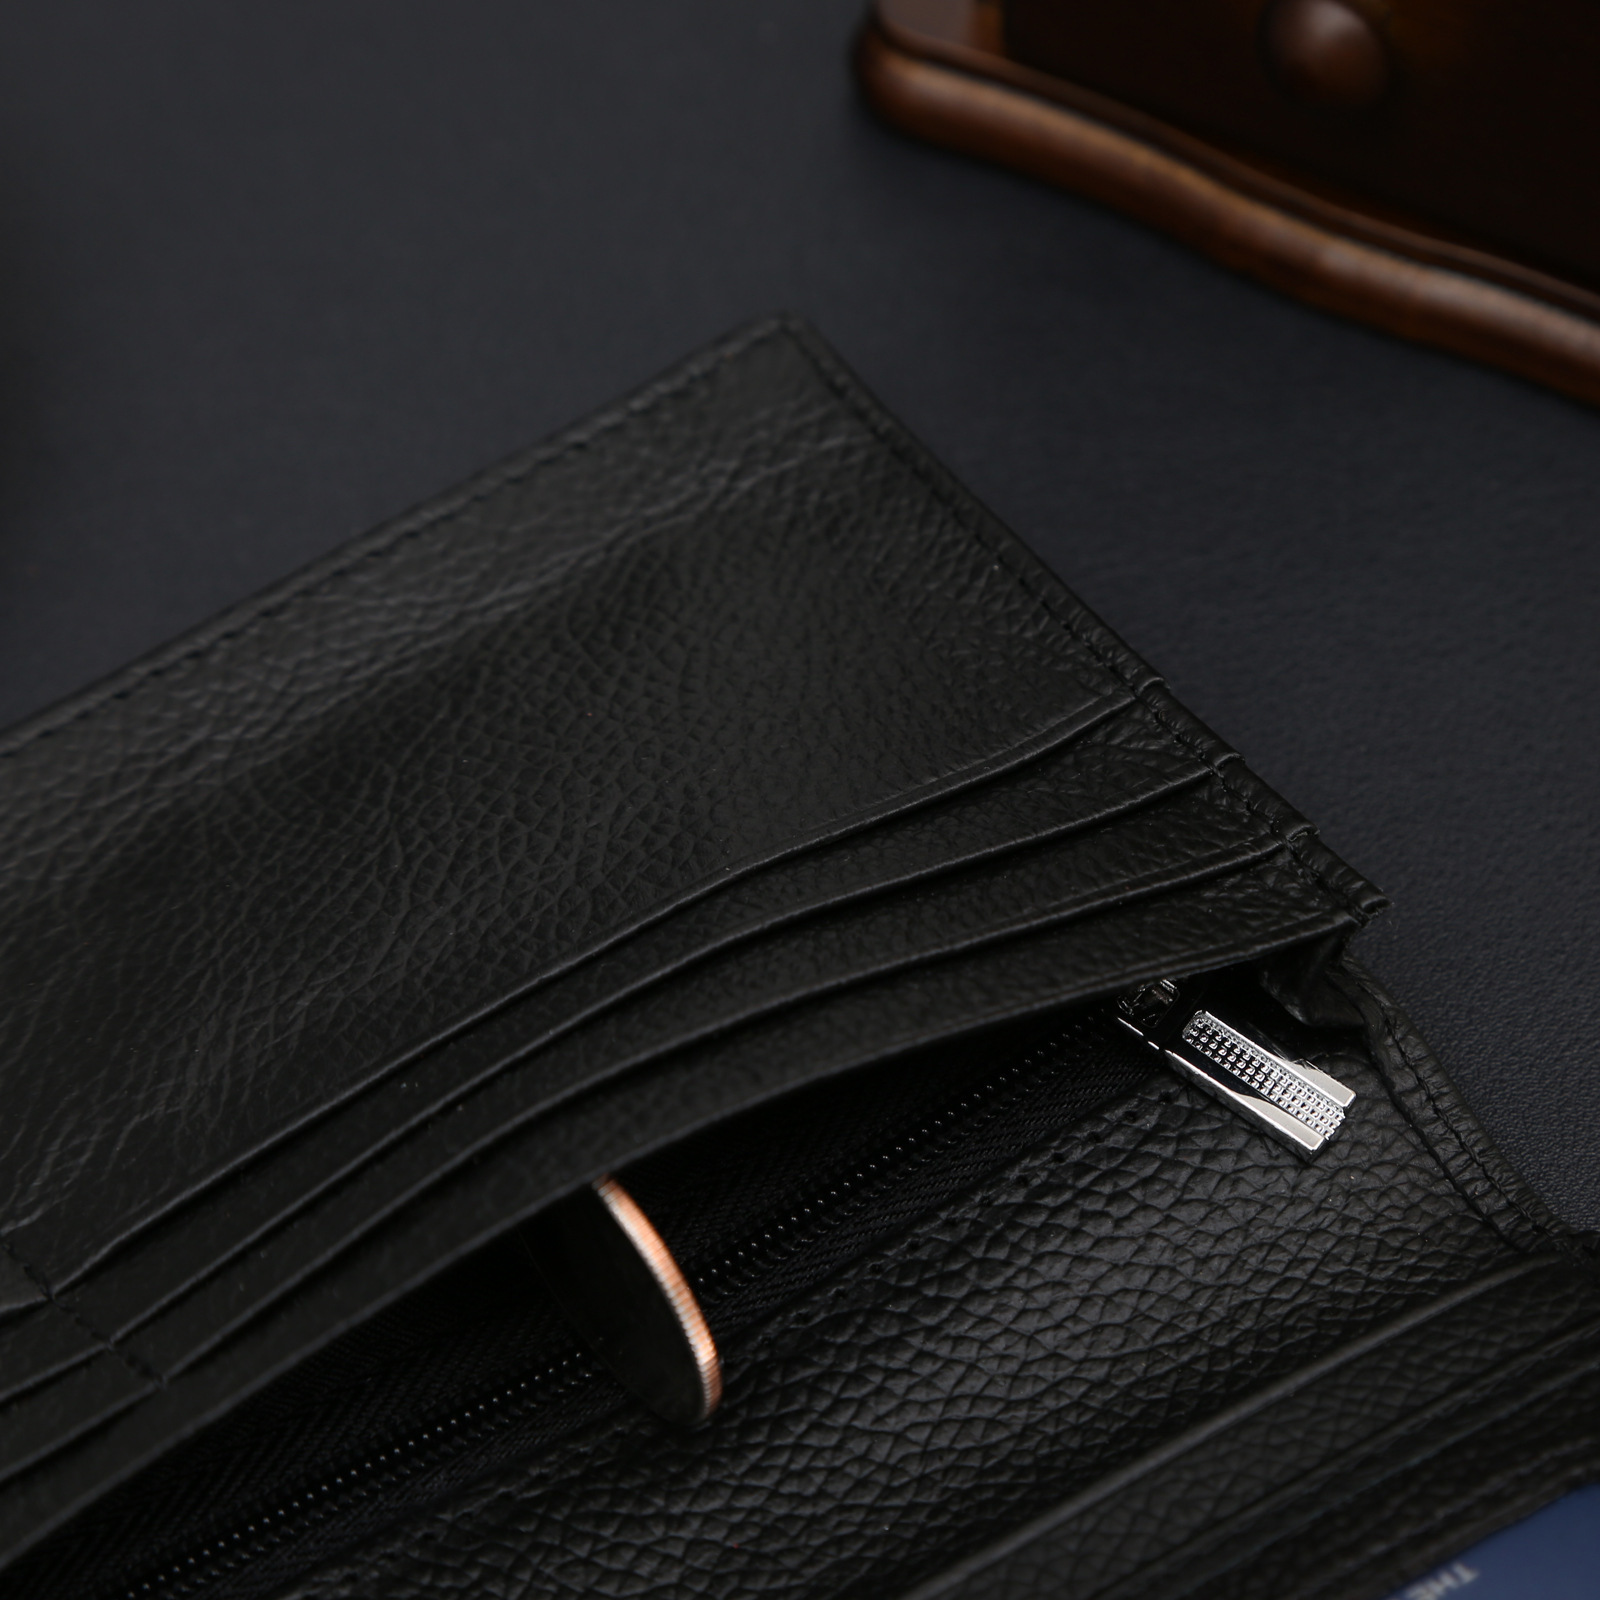 Long Famous Brand Handy Portfolio Leather Men Wallet Purse Male Clutch Bags With Coin Money Perse Portomonee Walet Cuzdan Vallet